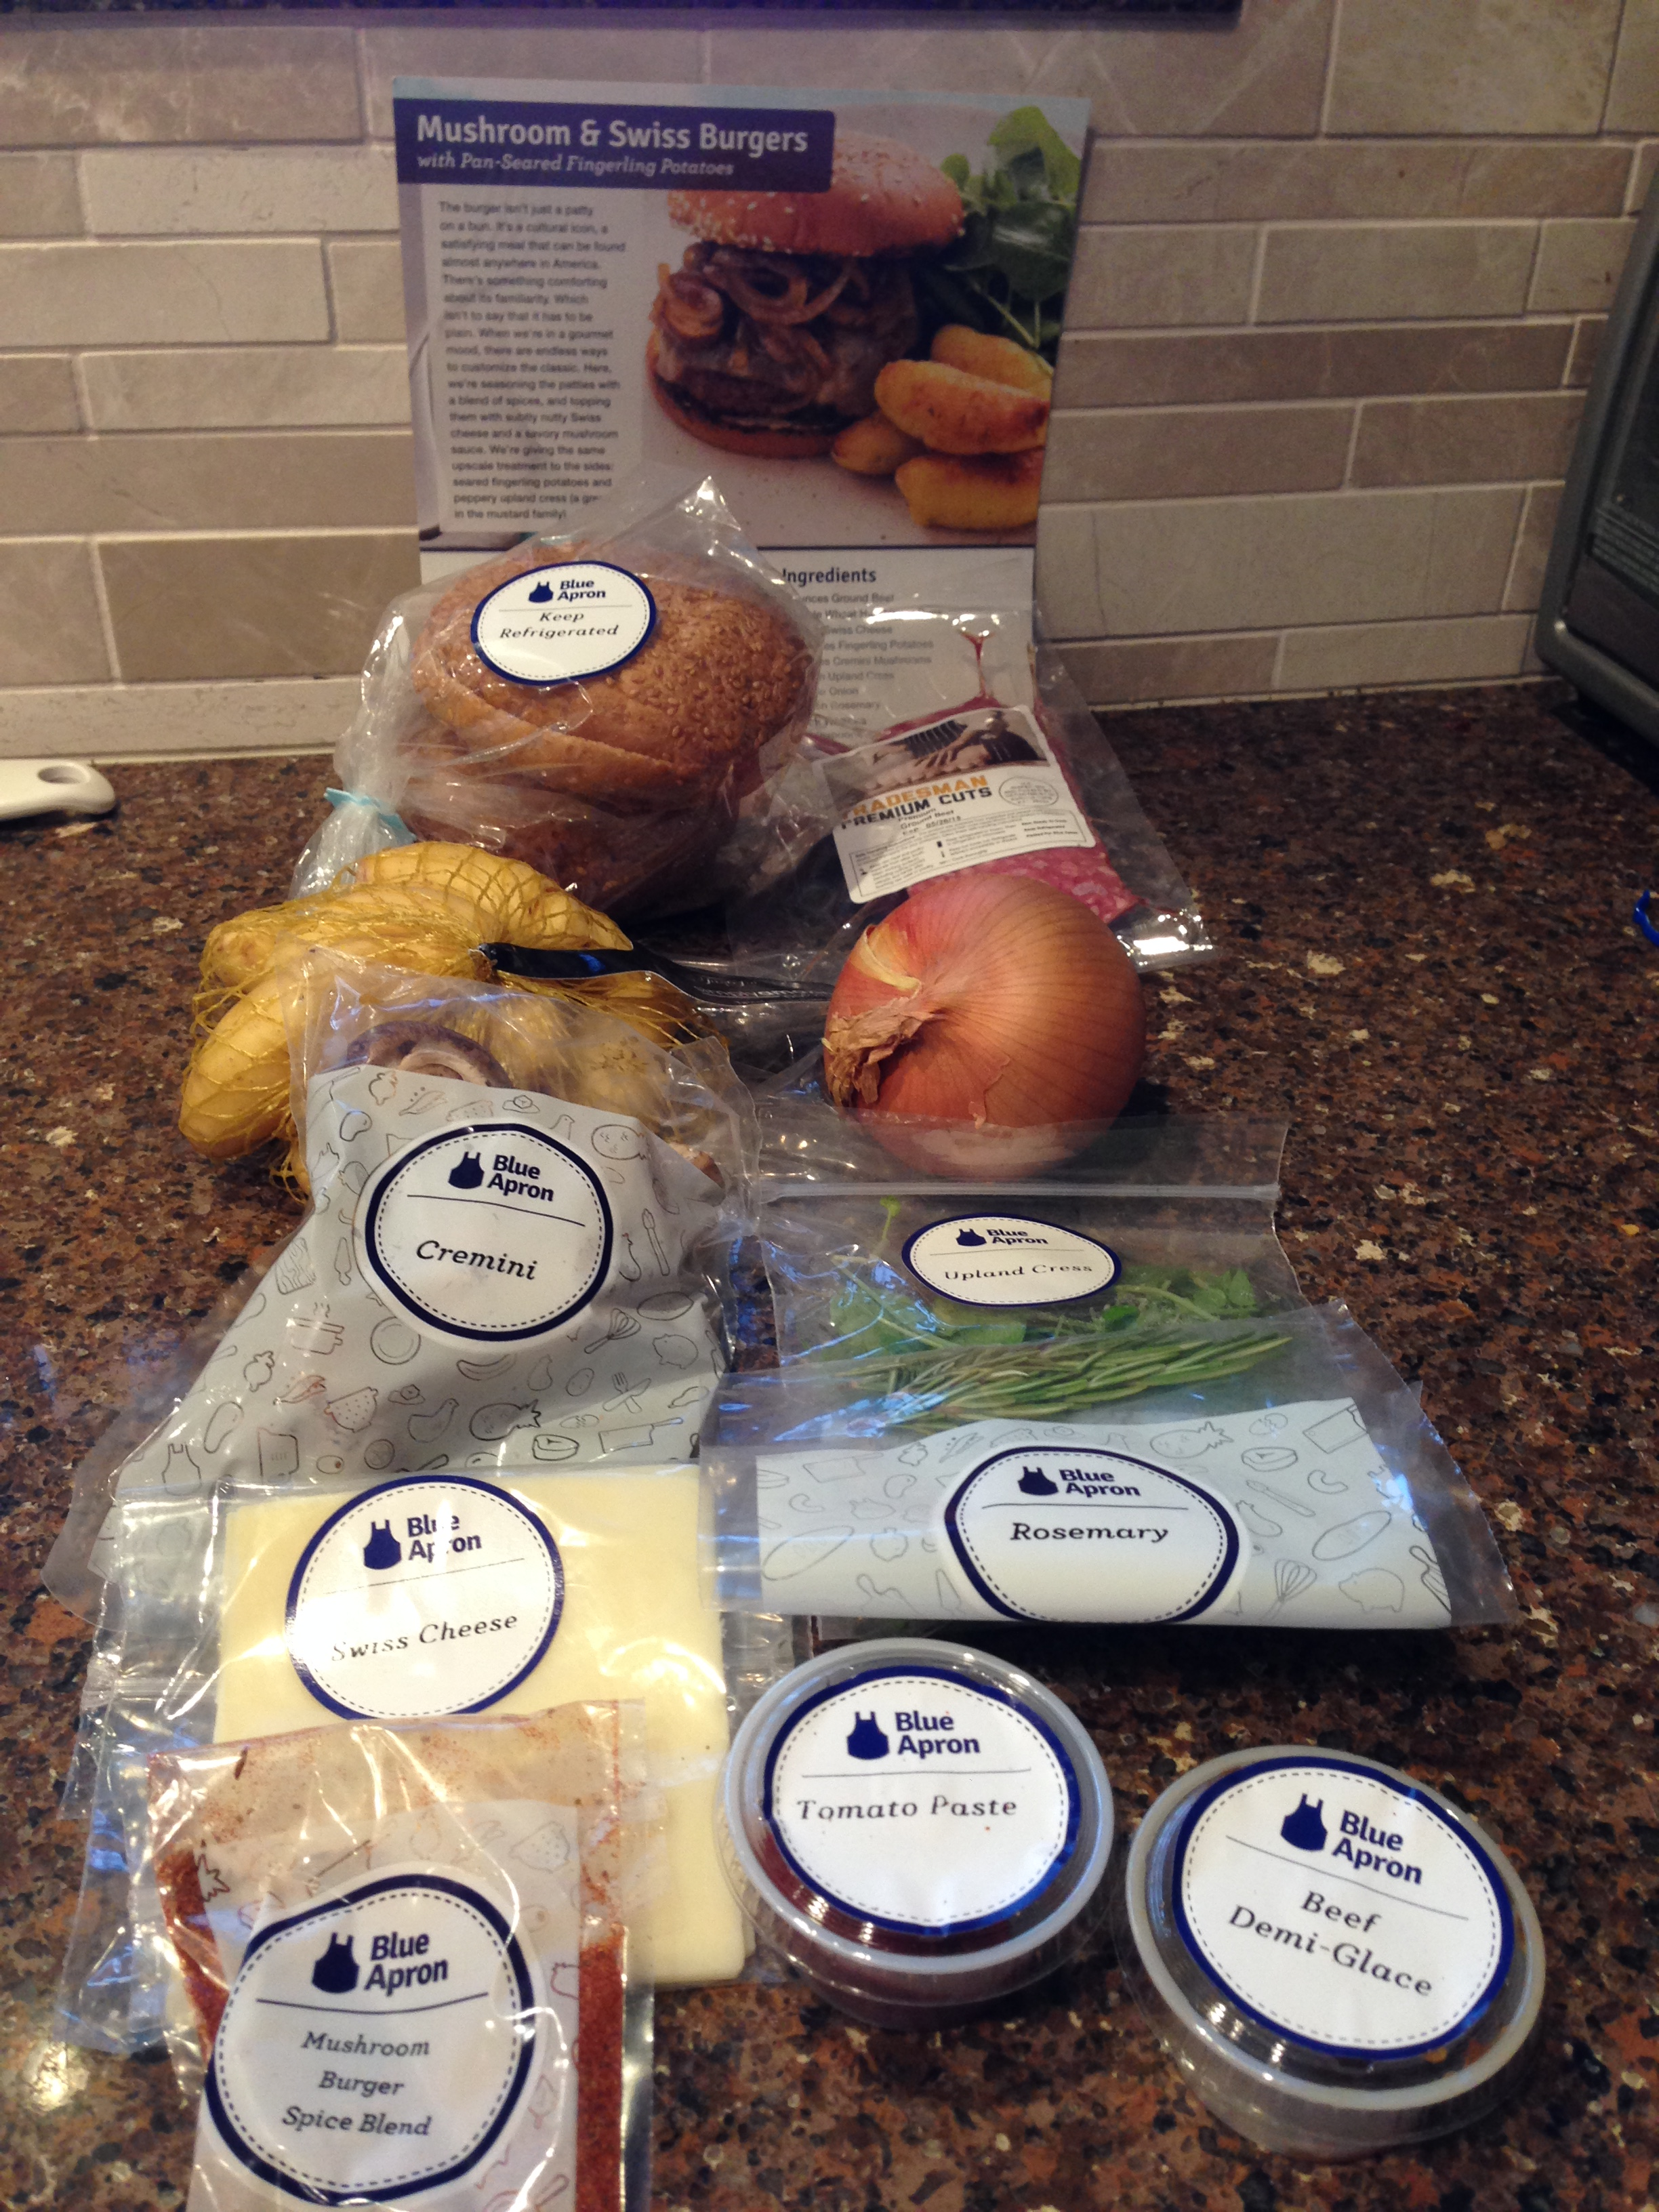 Blue apron working conditions - Mushroomswissburgers1